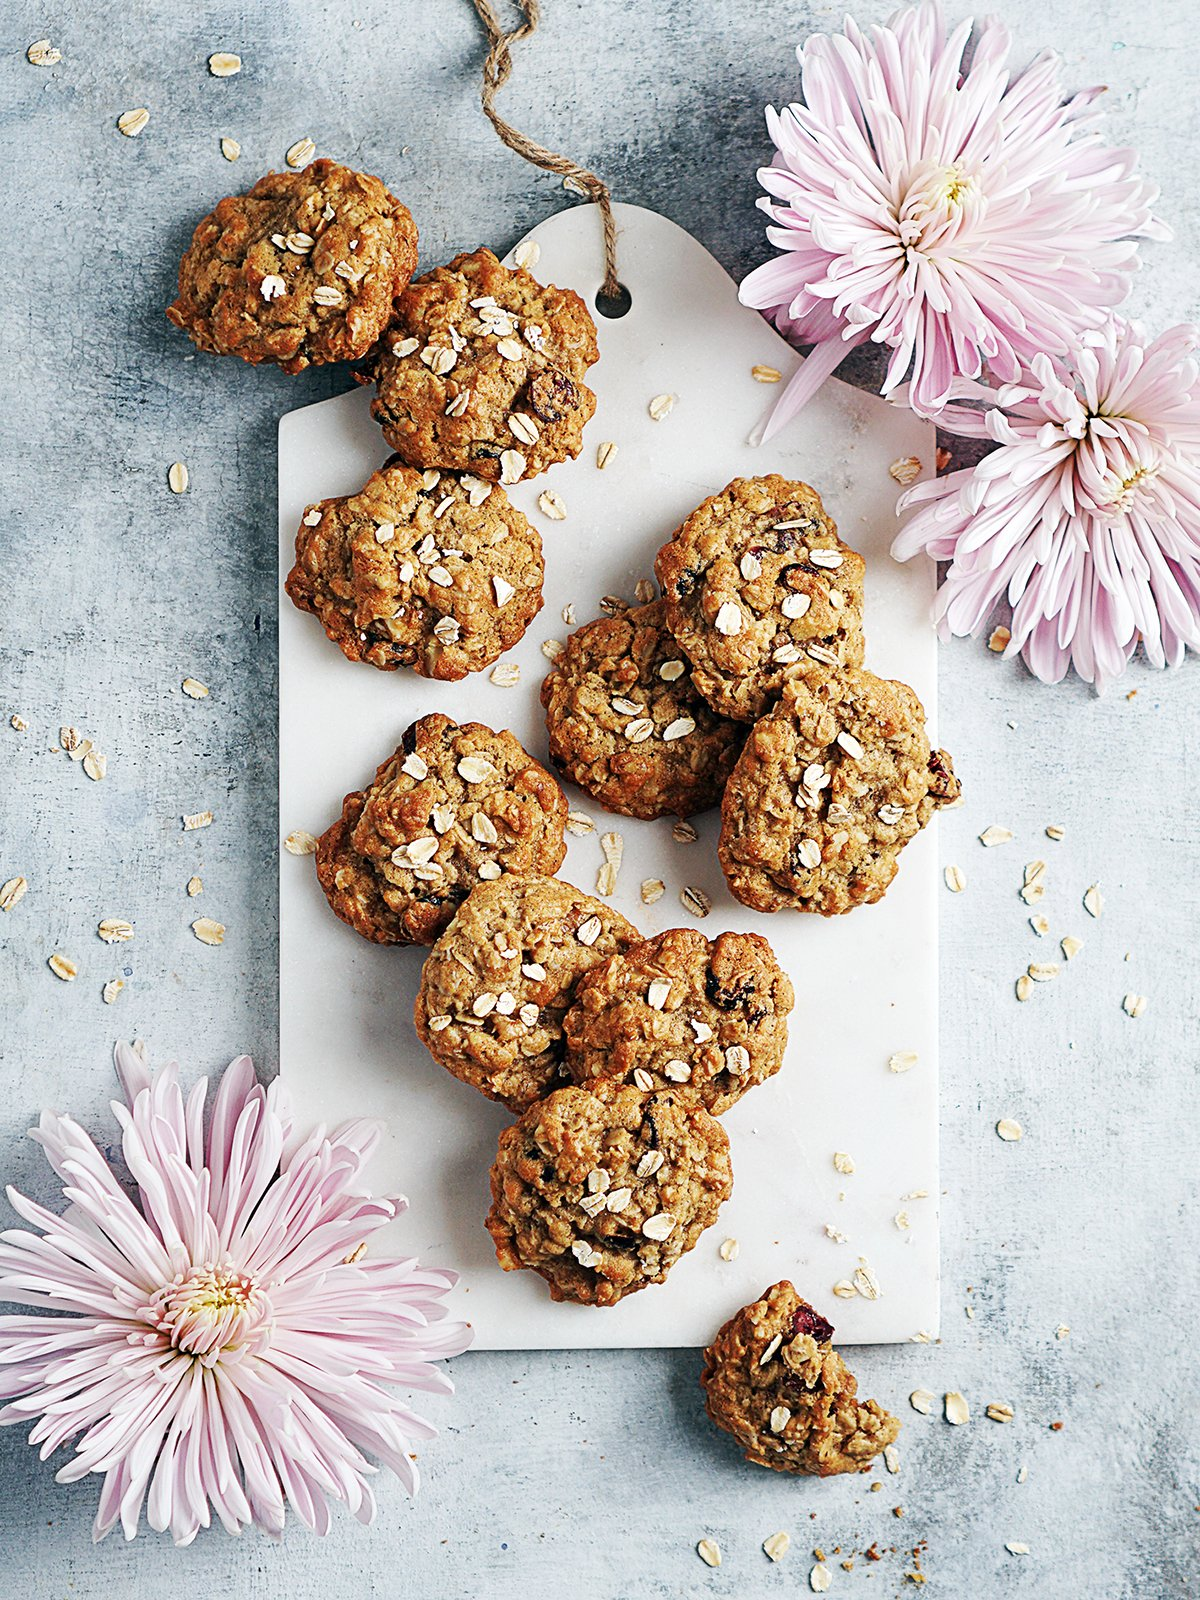 Galleas De Avena on a marble cutting board with 3 pretty pink flowers